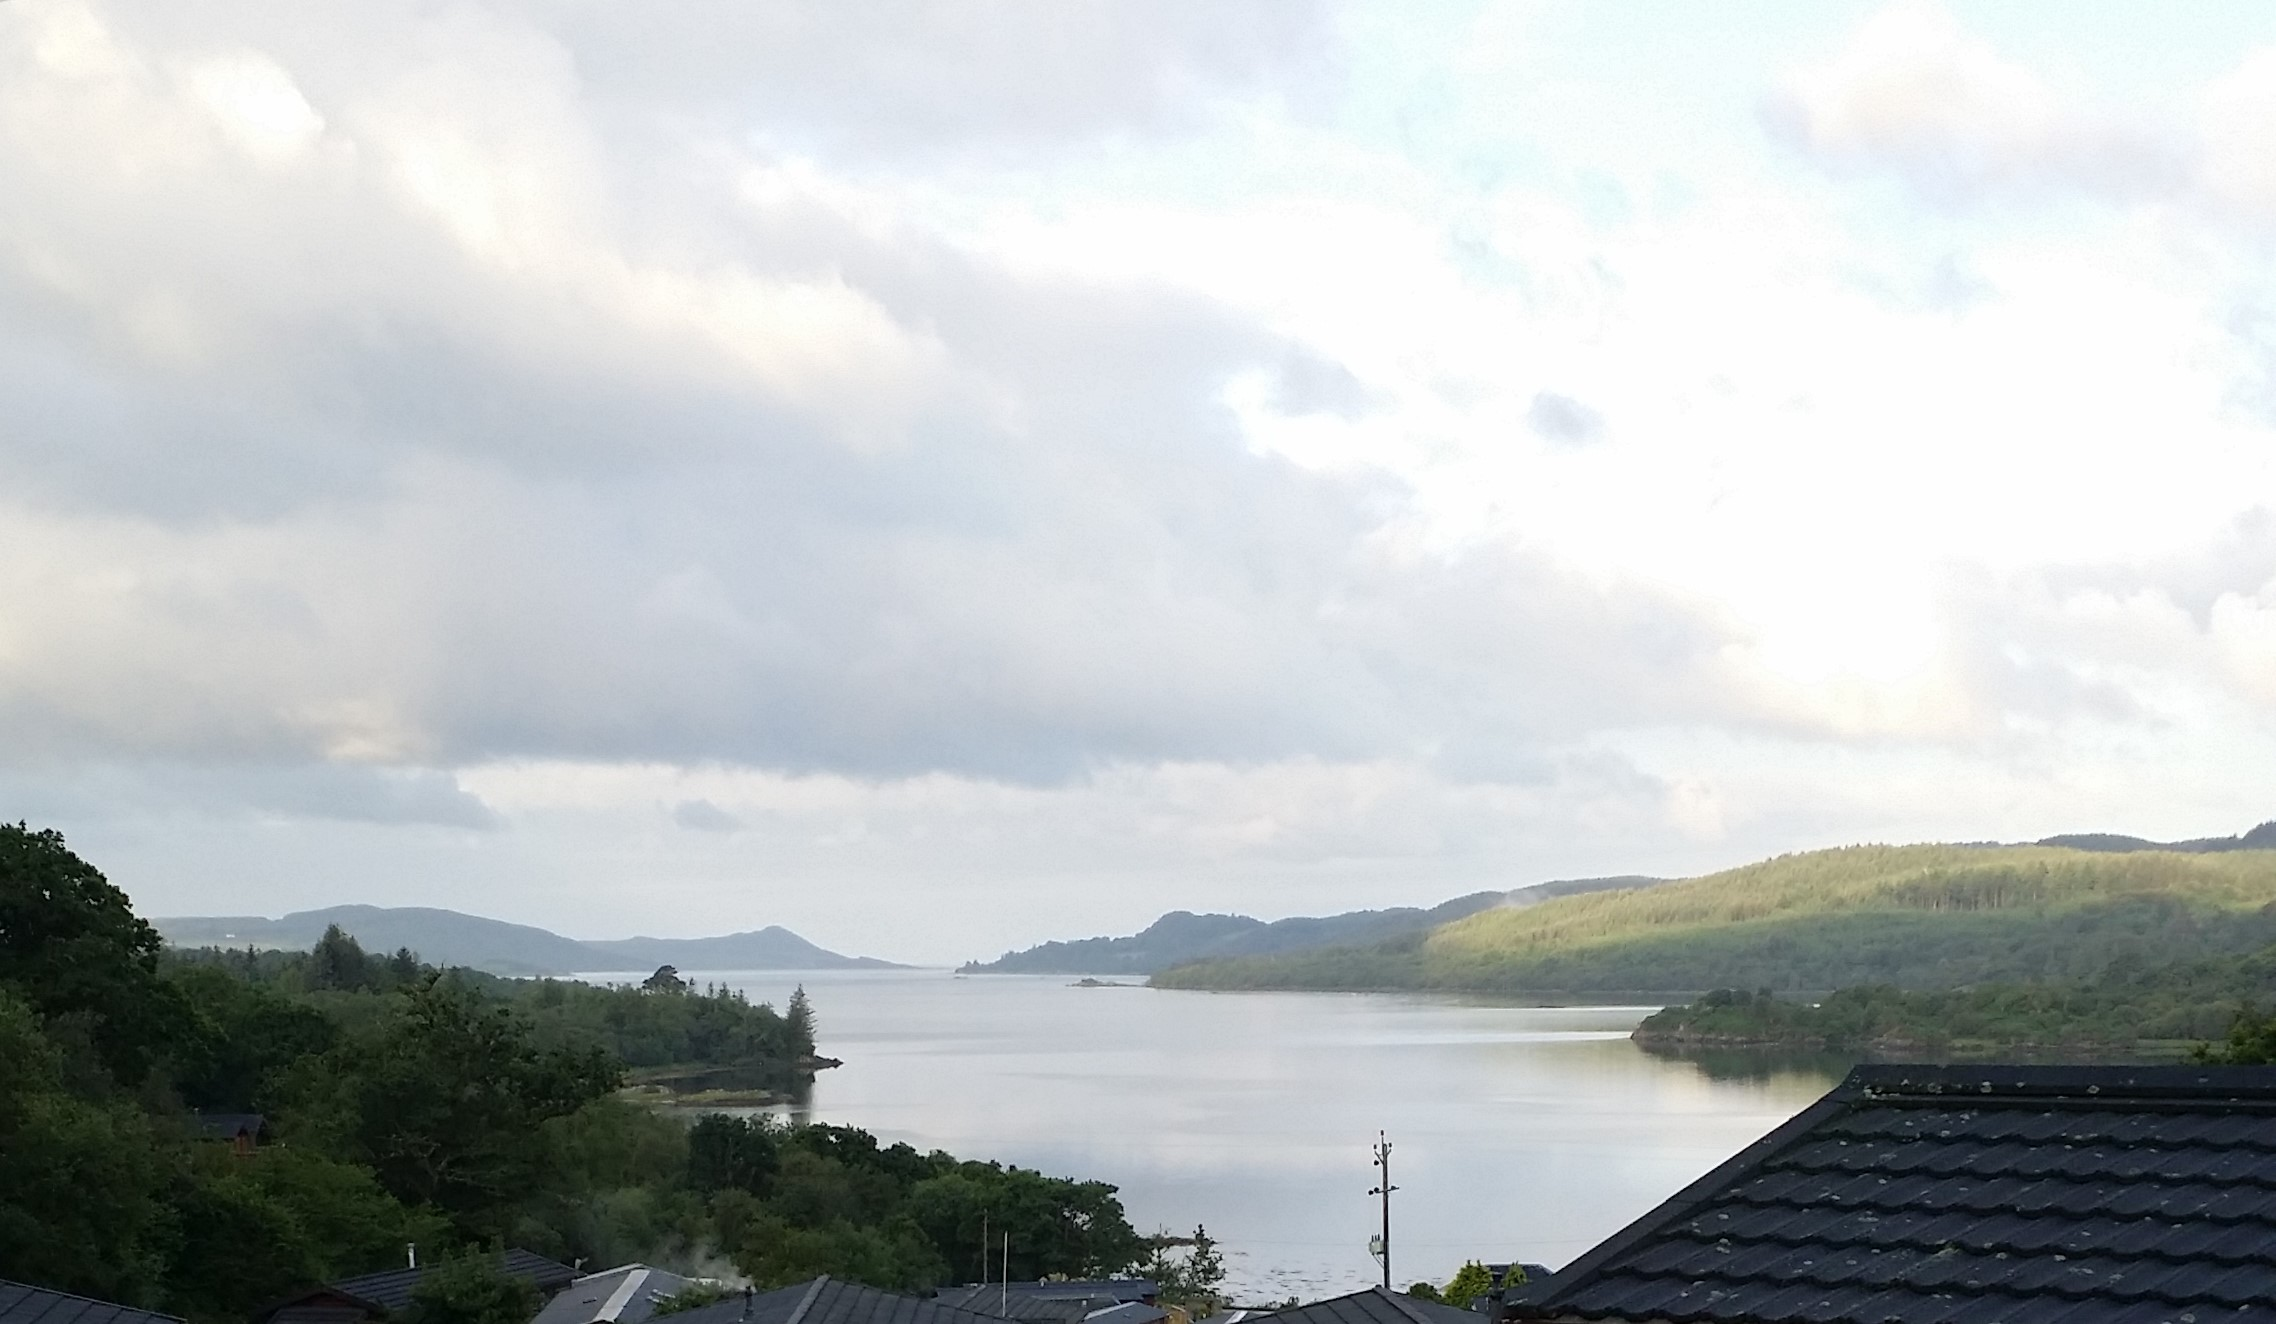 West Loch Tarbert looking southwest between green hills of Kintyre on left and Argyll on right.